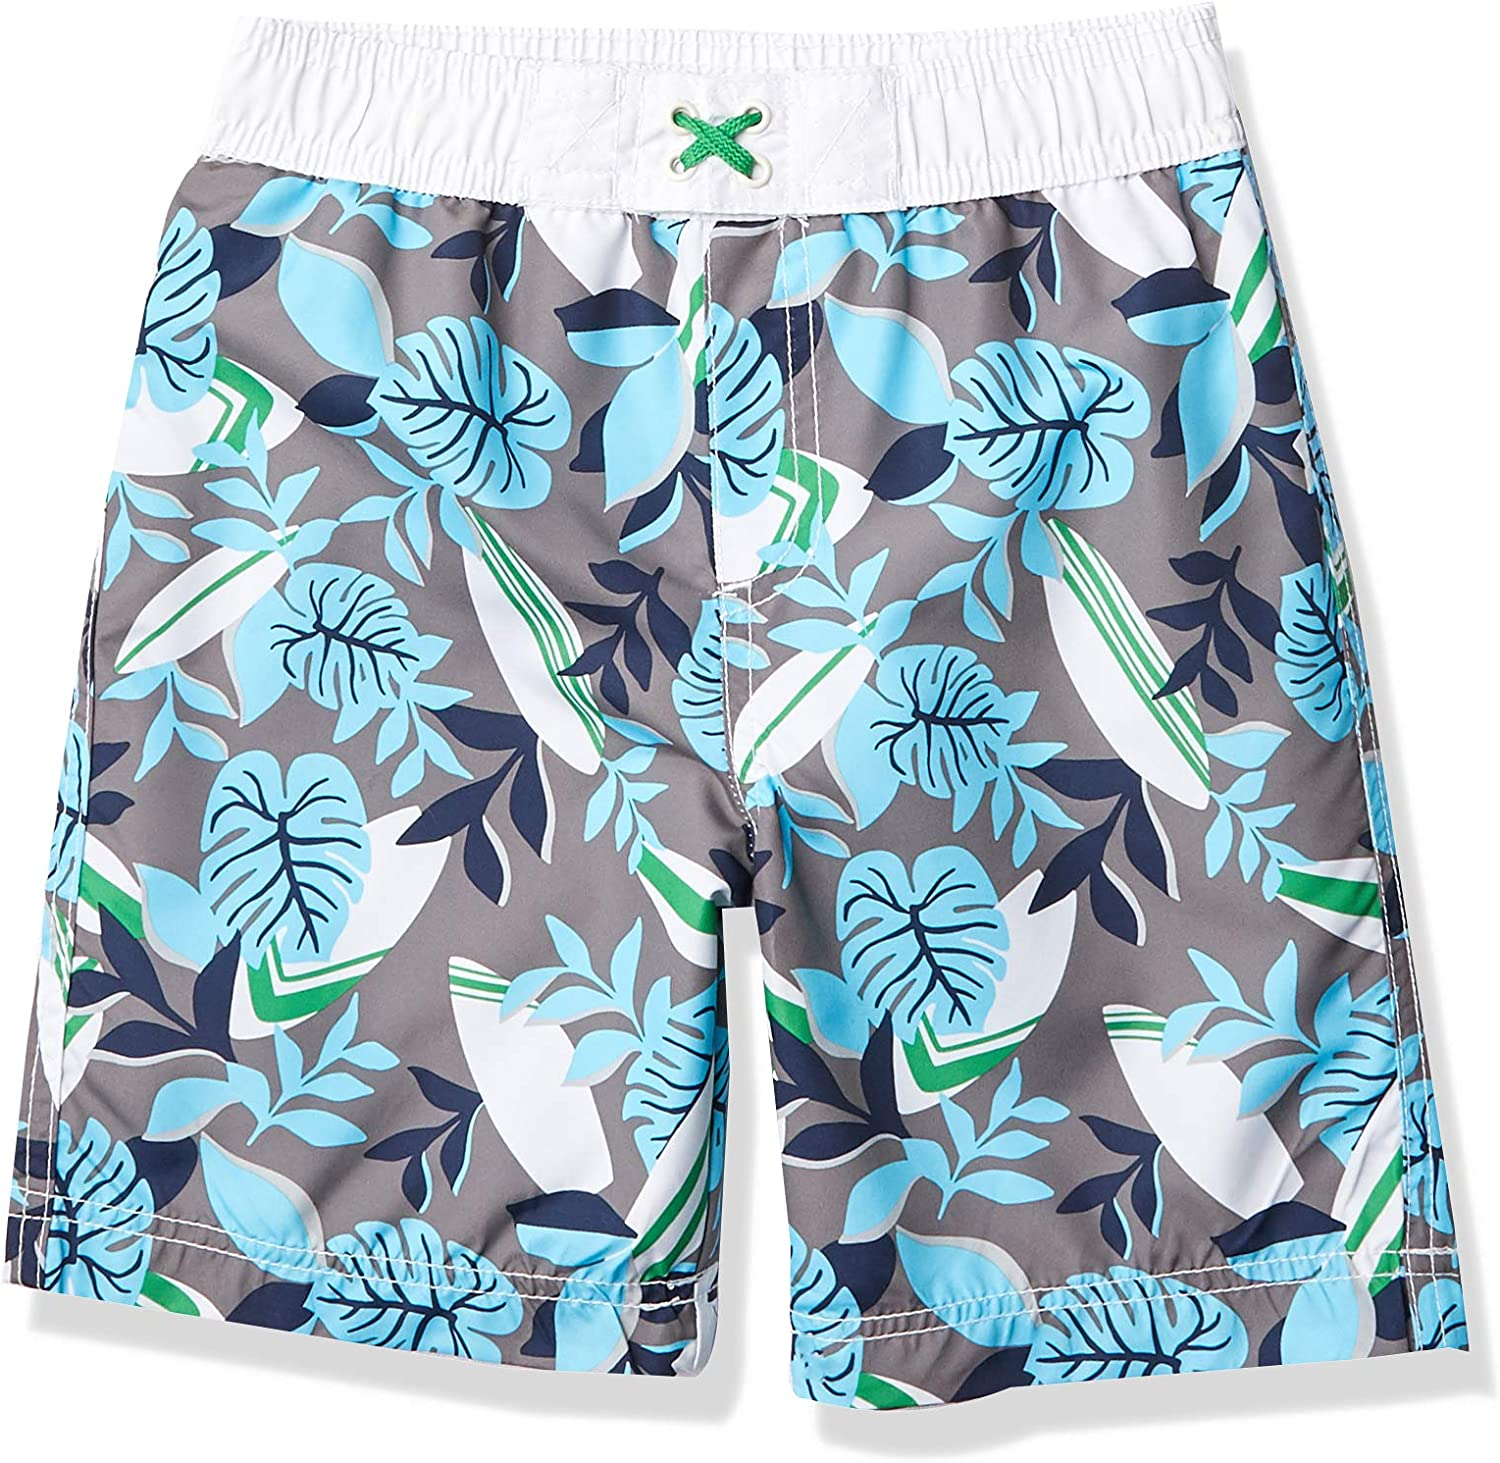 iXtreme Boys' Little Swim Trunks Wholesale Quick Mesh outlet Lin Board Shorts Dry